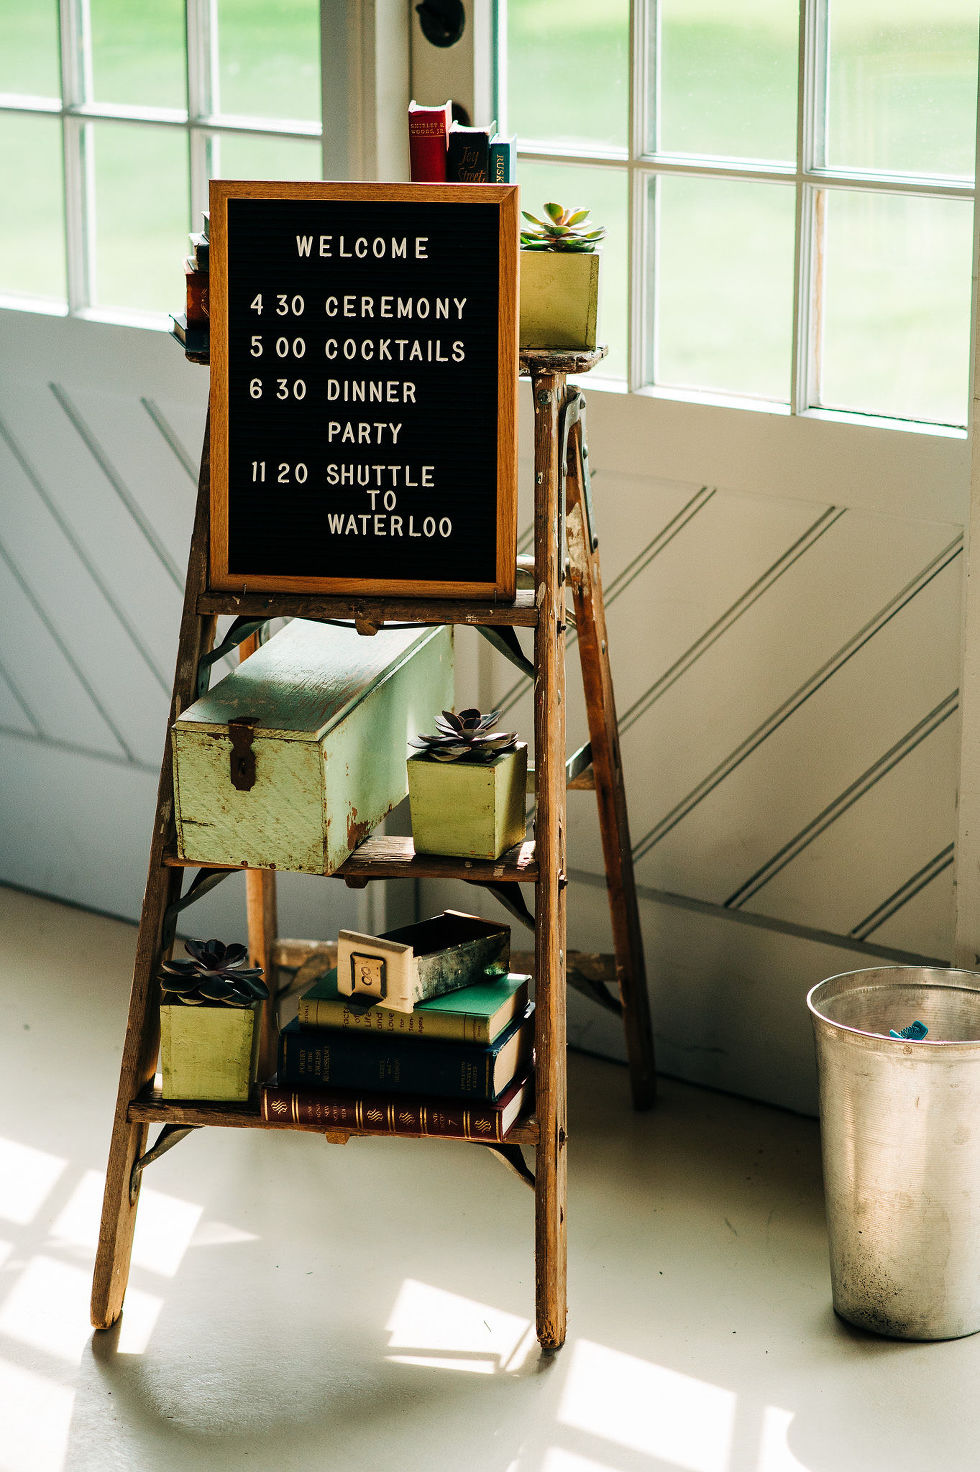 bookshelf with books and a welcome sign with a wedding day itinerary for the guests at Ruthven Park National Historic Site